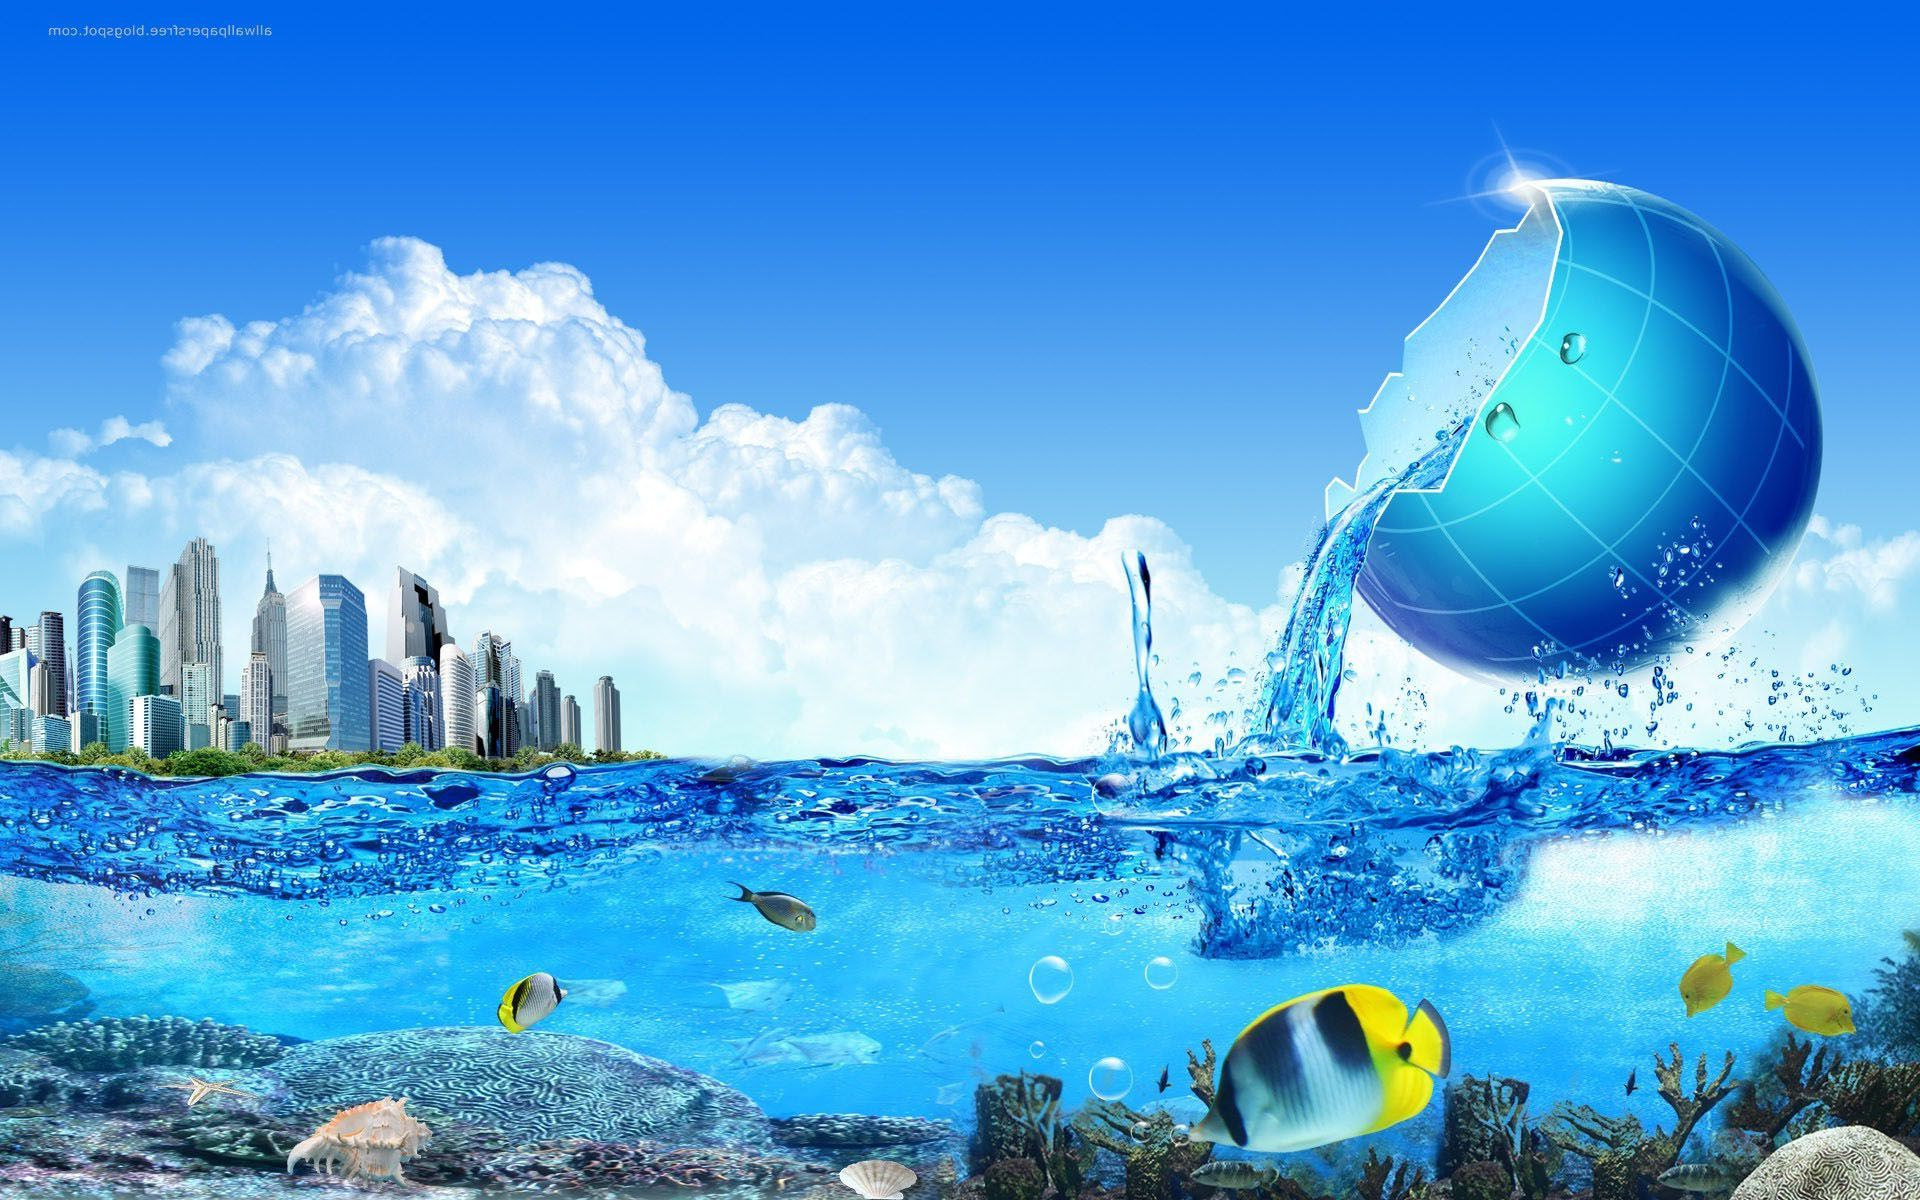 Nature Water Sea Hd 3d Wallpapers Photography Wallpaper Wallpaper Backgrounds Wallpaper